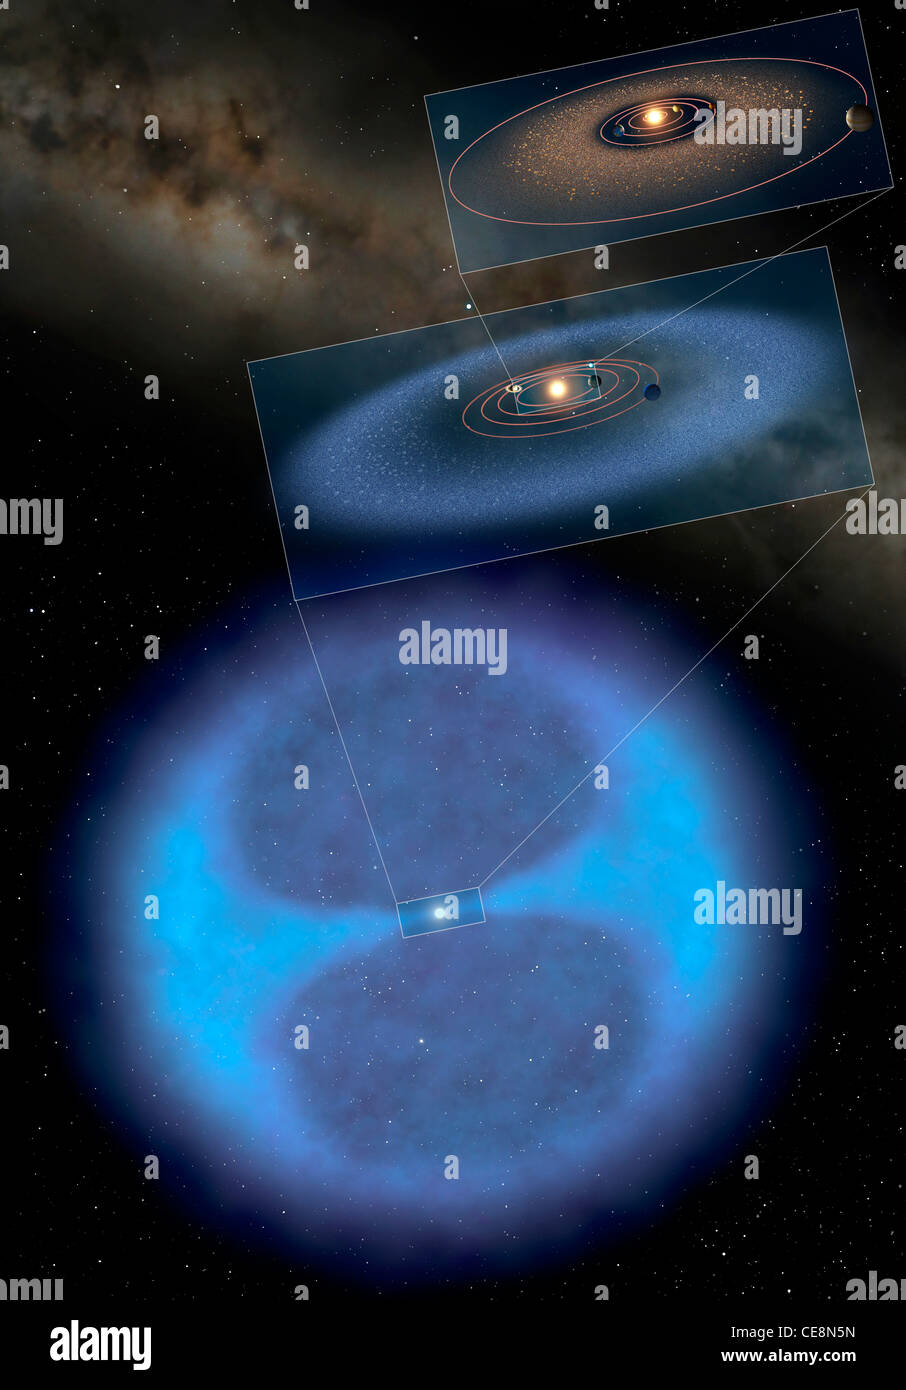 Exploded diagram showing solar system oort cloud comets surrounds it exploded diagram showing solar system oort cloud comets surrounds it inner solar system top extends out to asteroid belt beyond ccuart Image collections